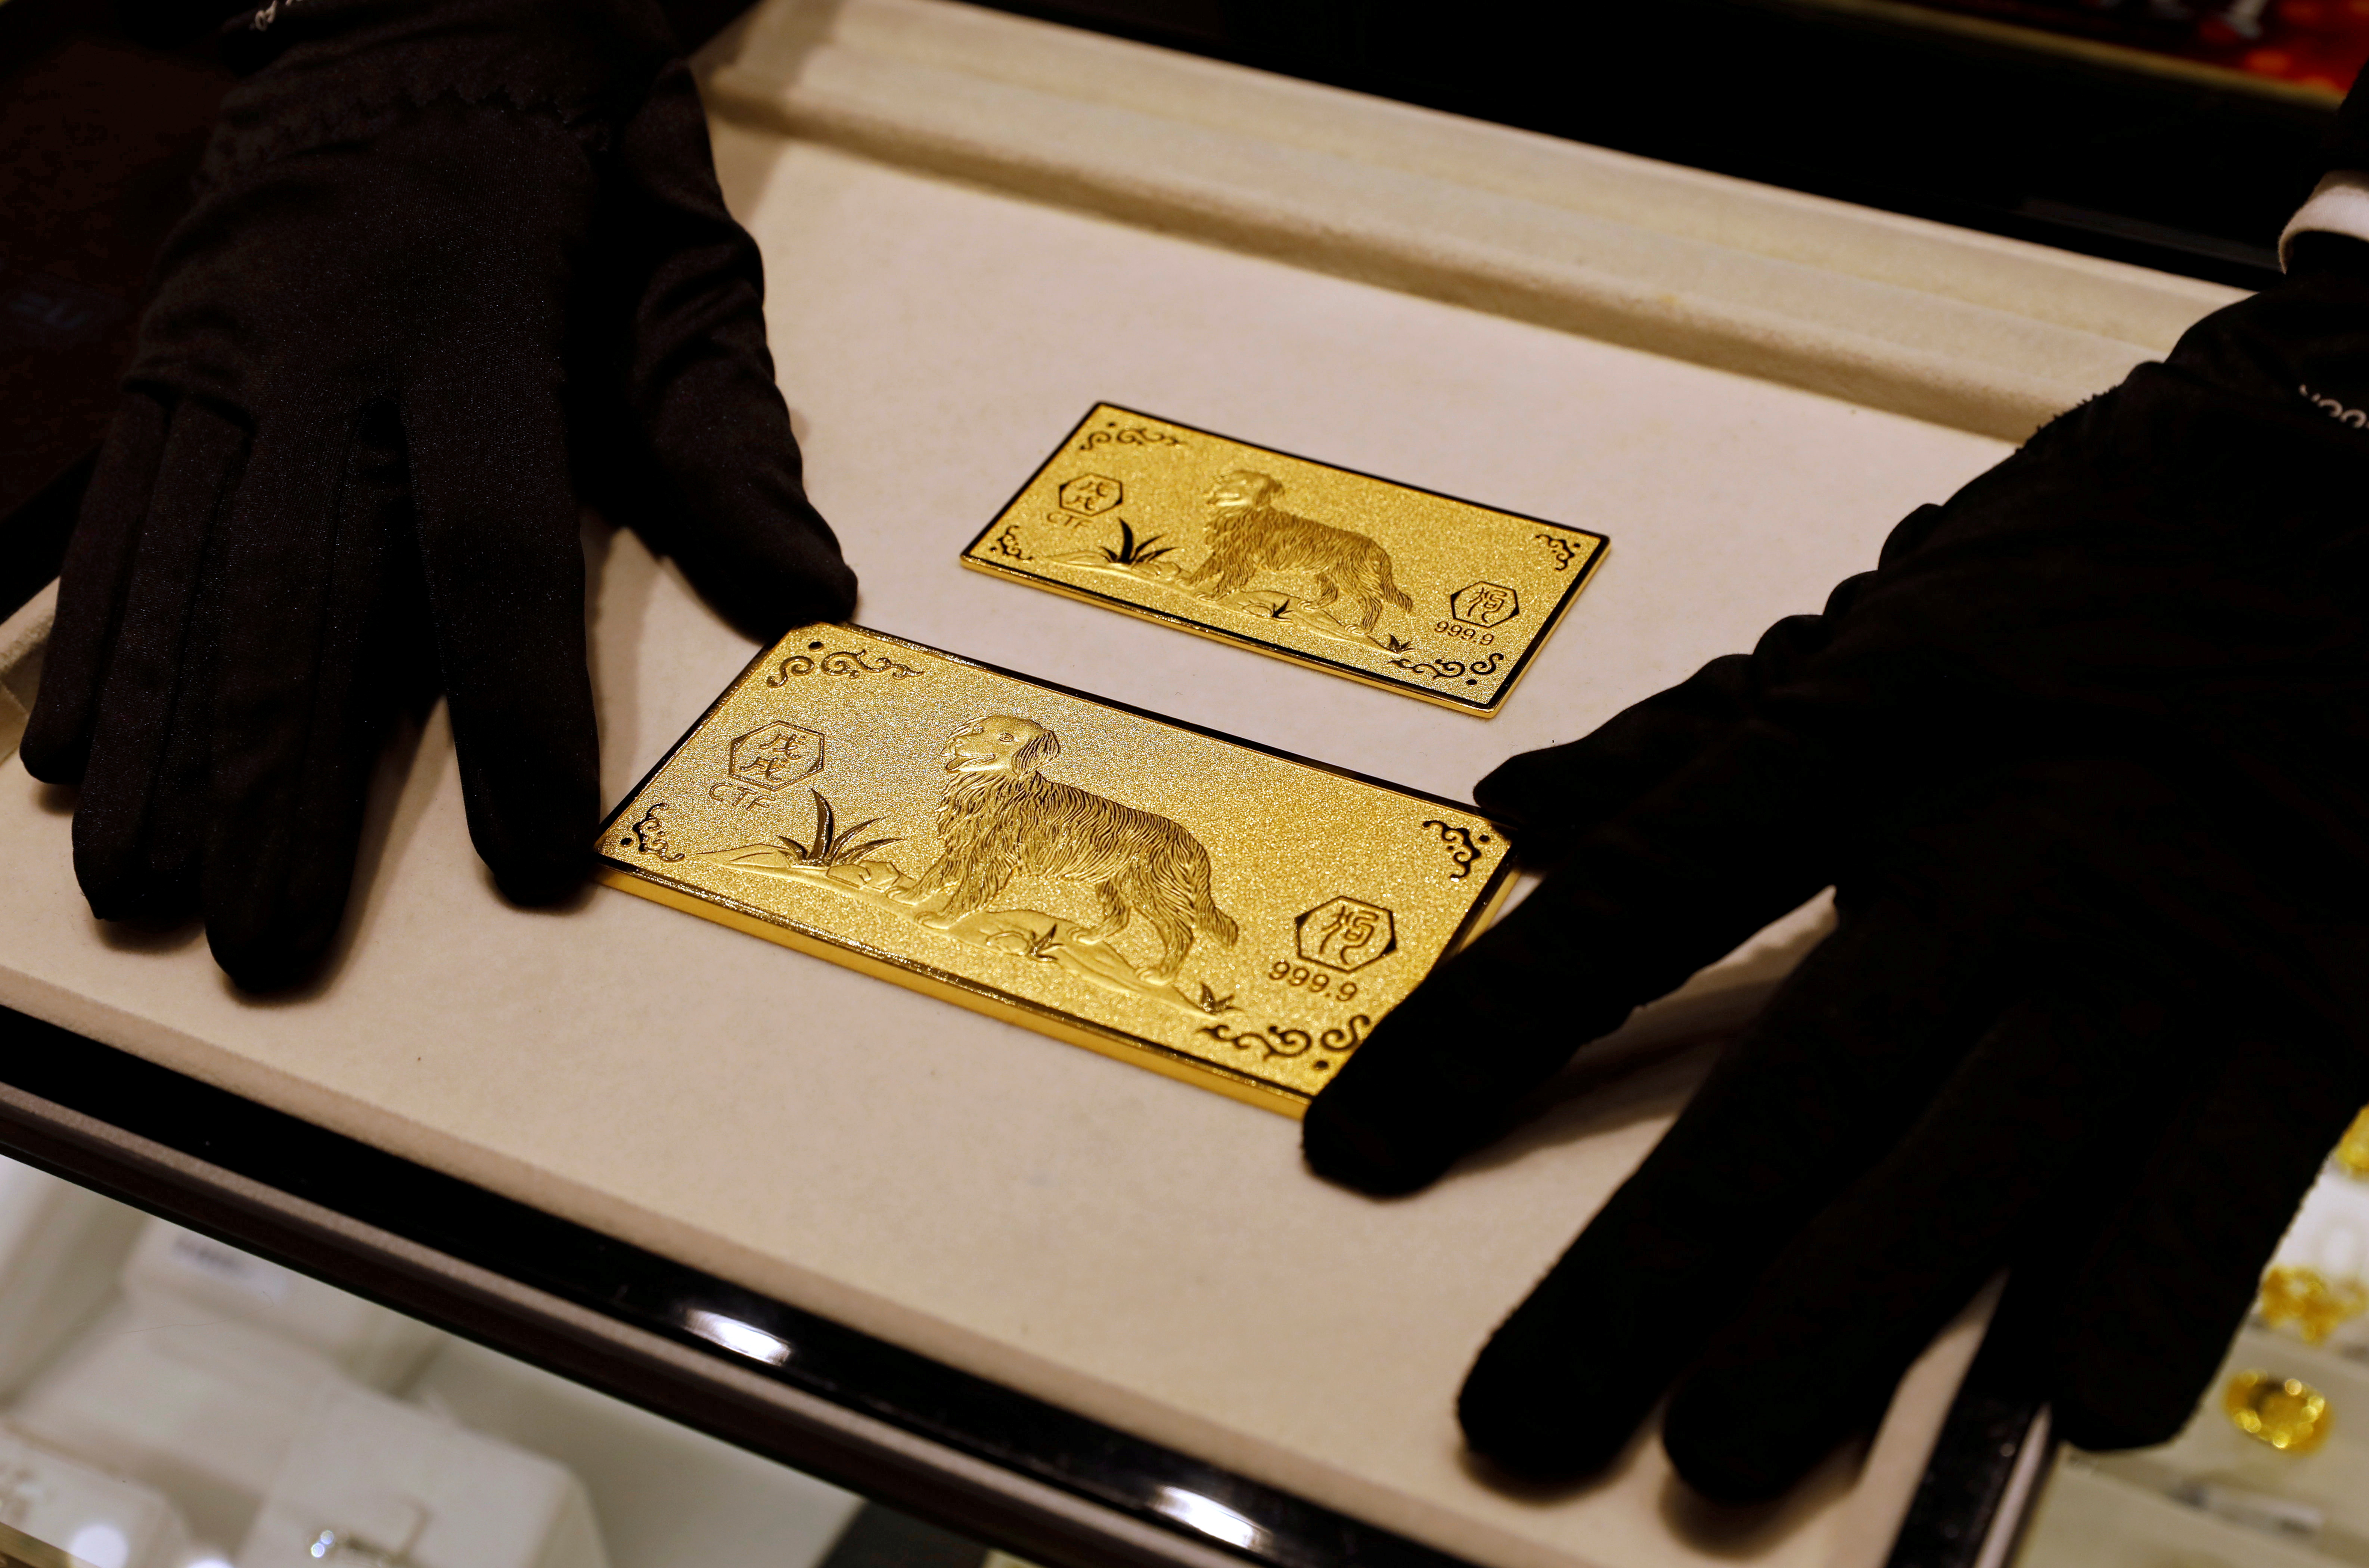 A salesperson arranges 24K gold bars engraved with dogs at Chow Tai Fook Jewellery store ahead of the Lunar Year of the Dog in Hong Kong, China December 14, 2017. REUTERS/Tyrone Siu